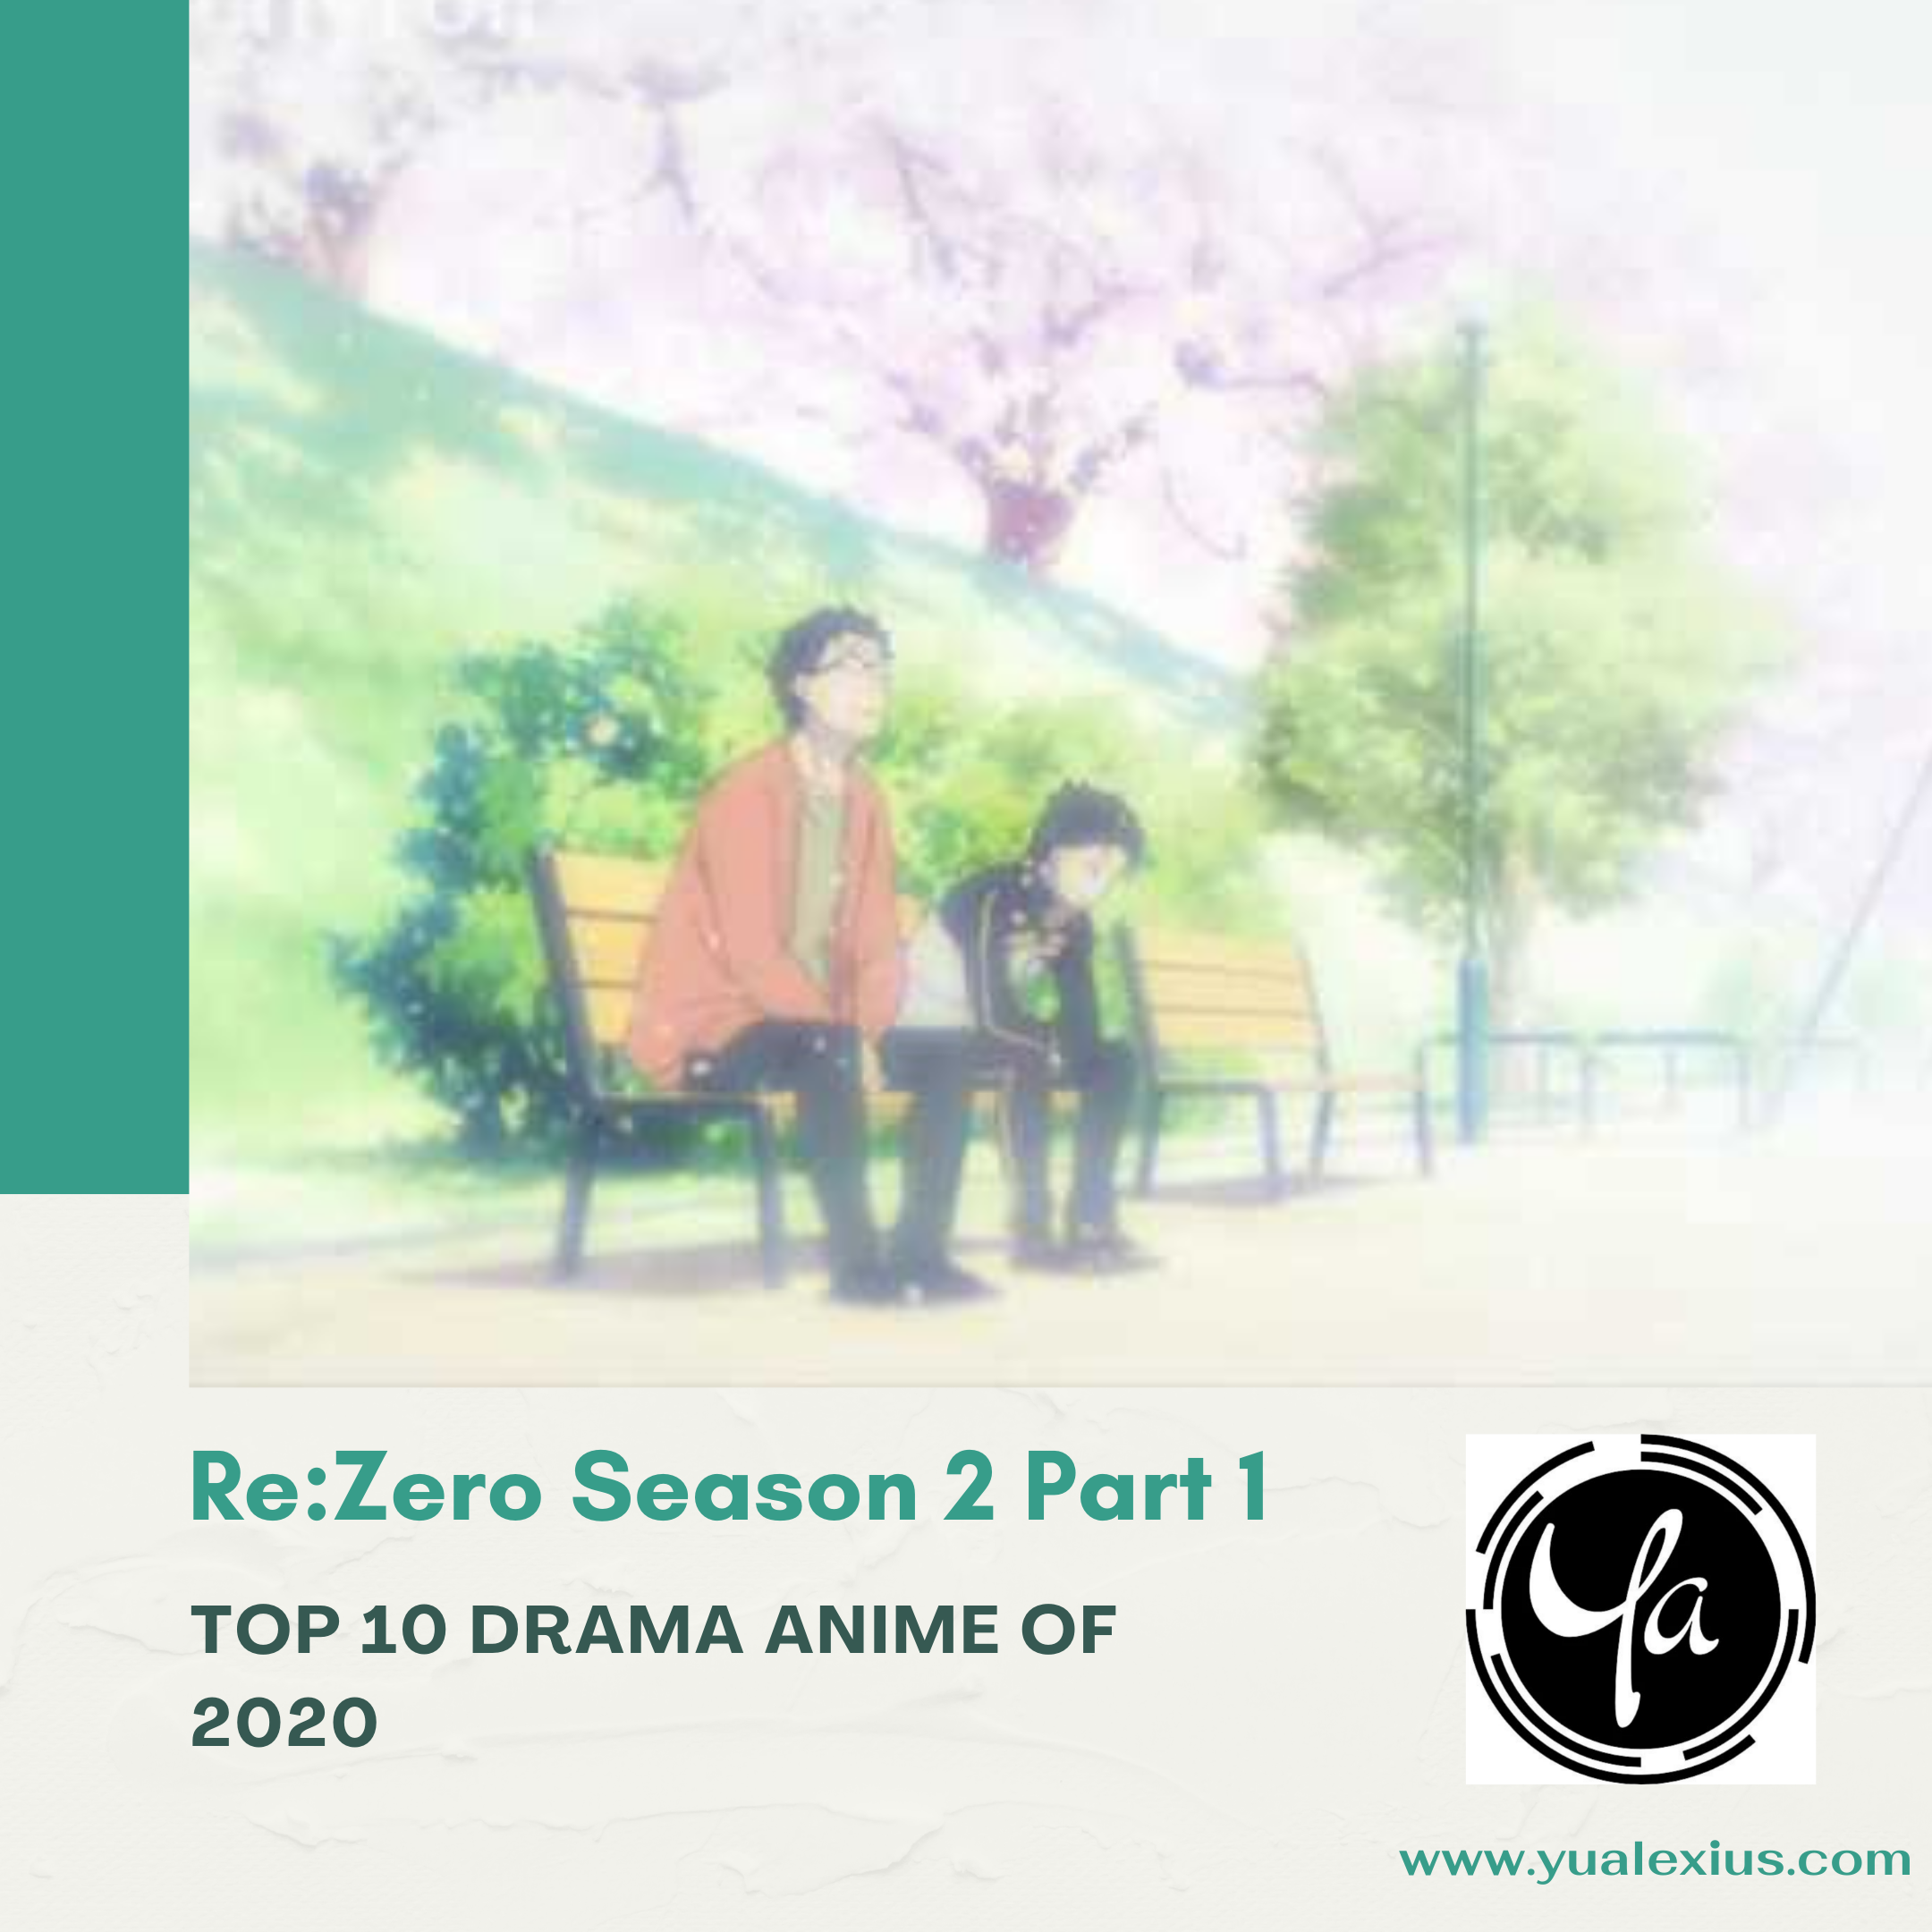 Re:Zero Season 2 Part 1